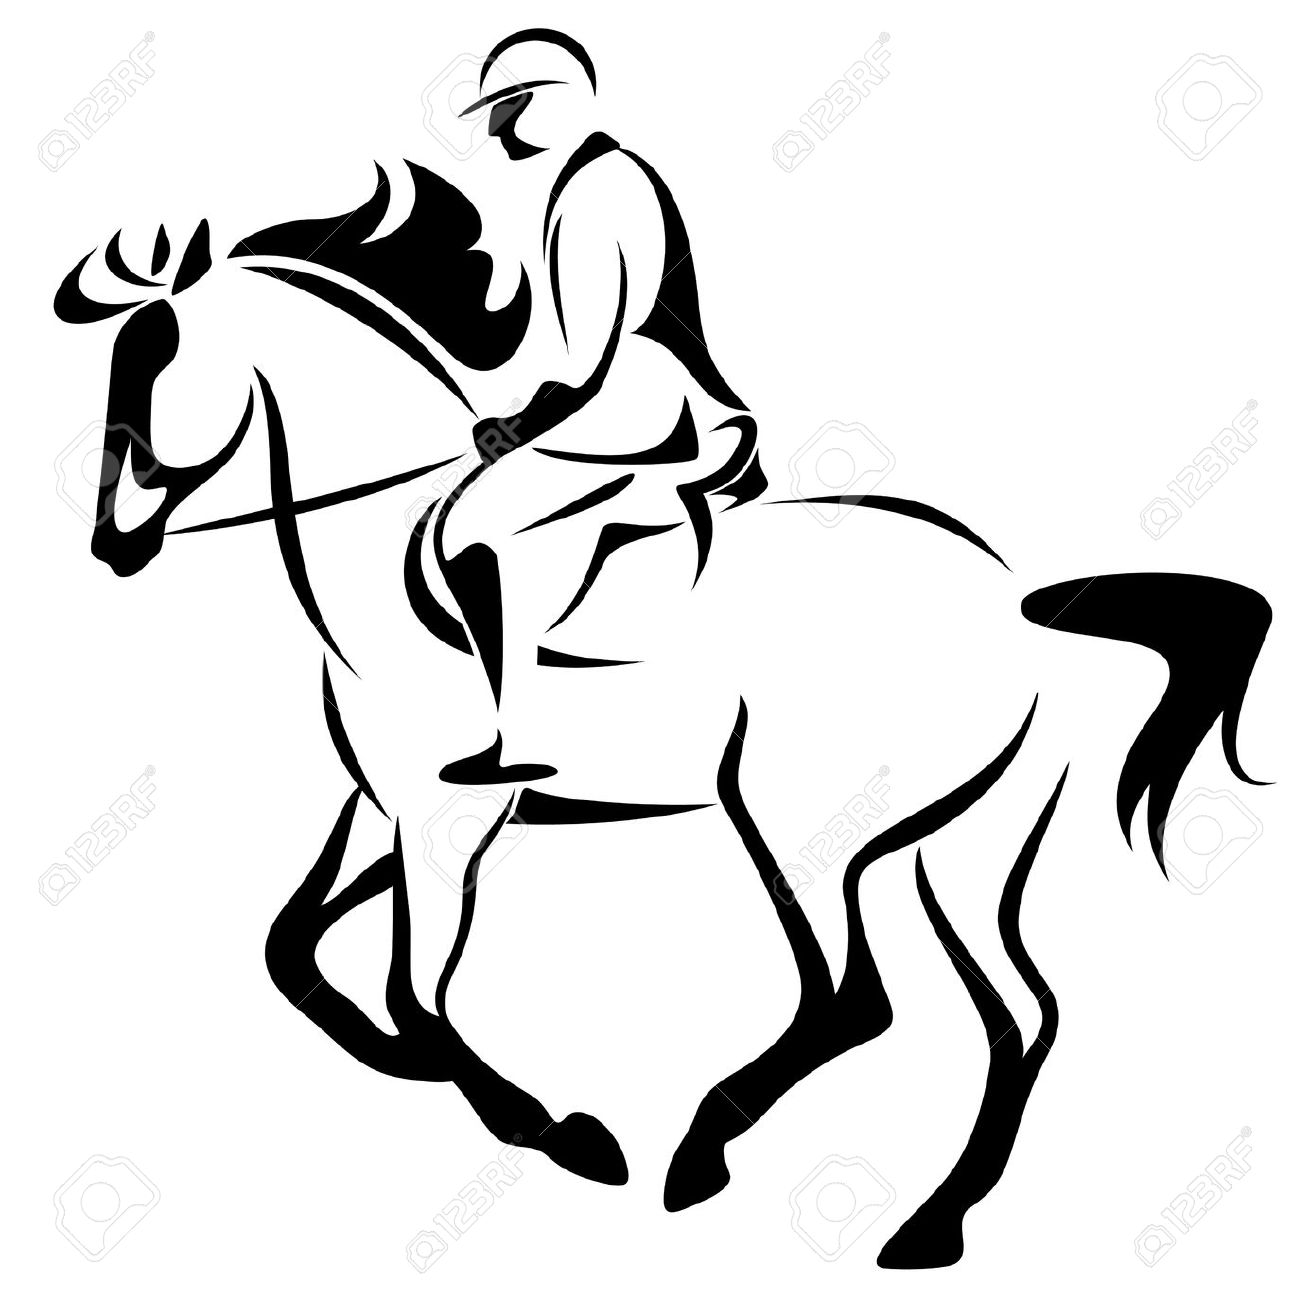 Horse riding clipart #19